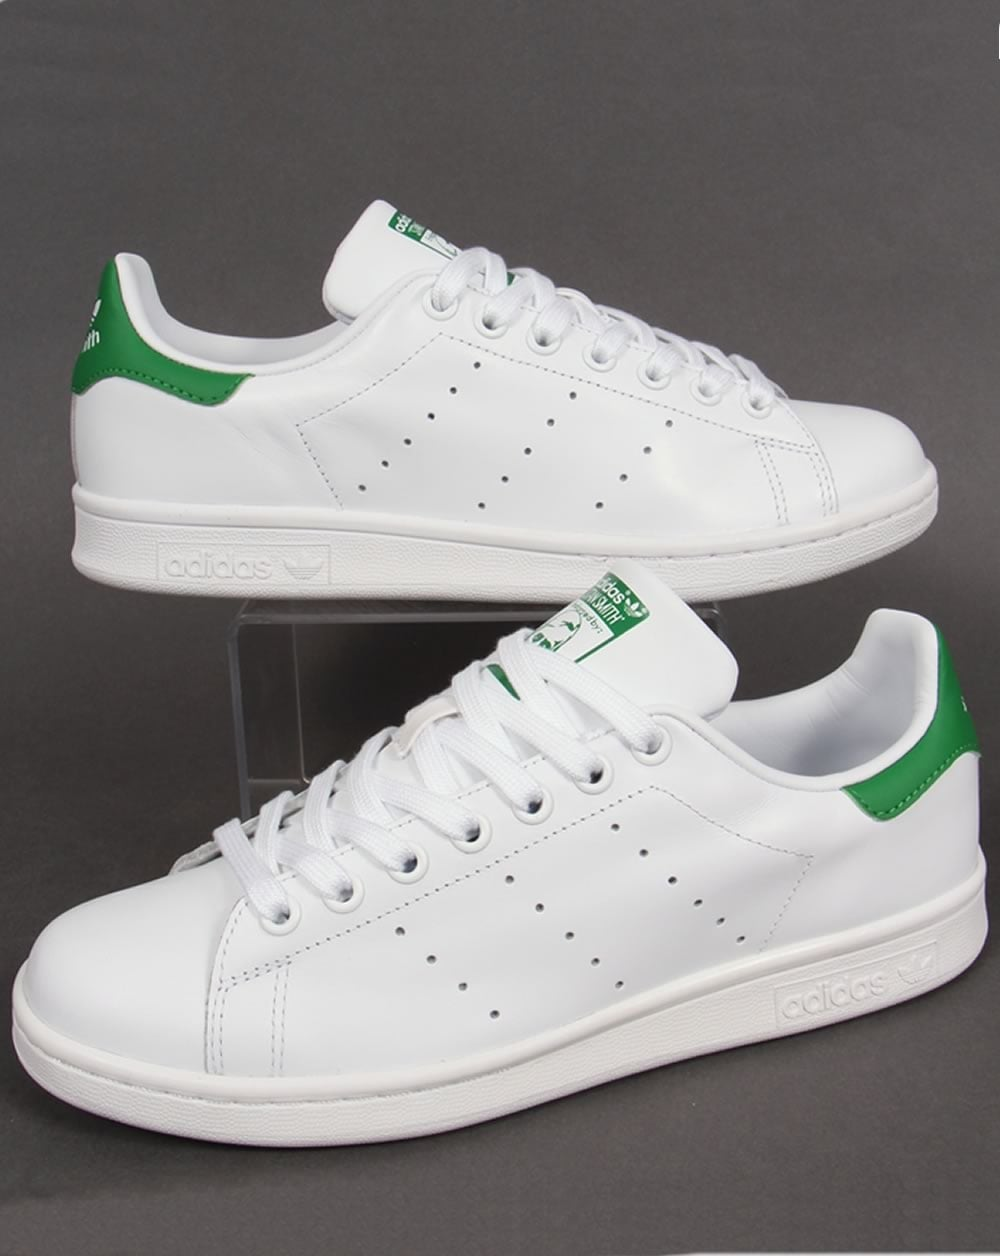 dbea4ca703a Adidas Stan Smith Trainers White/Green Tennis | 80s casual classics